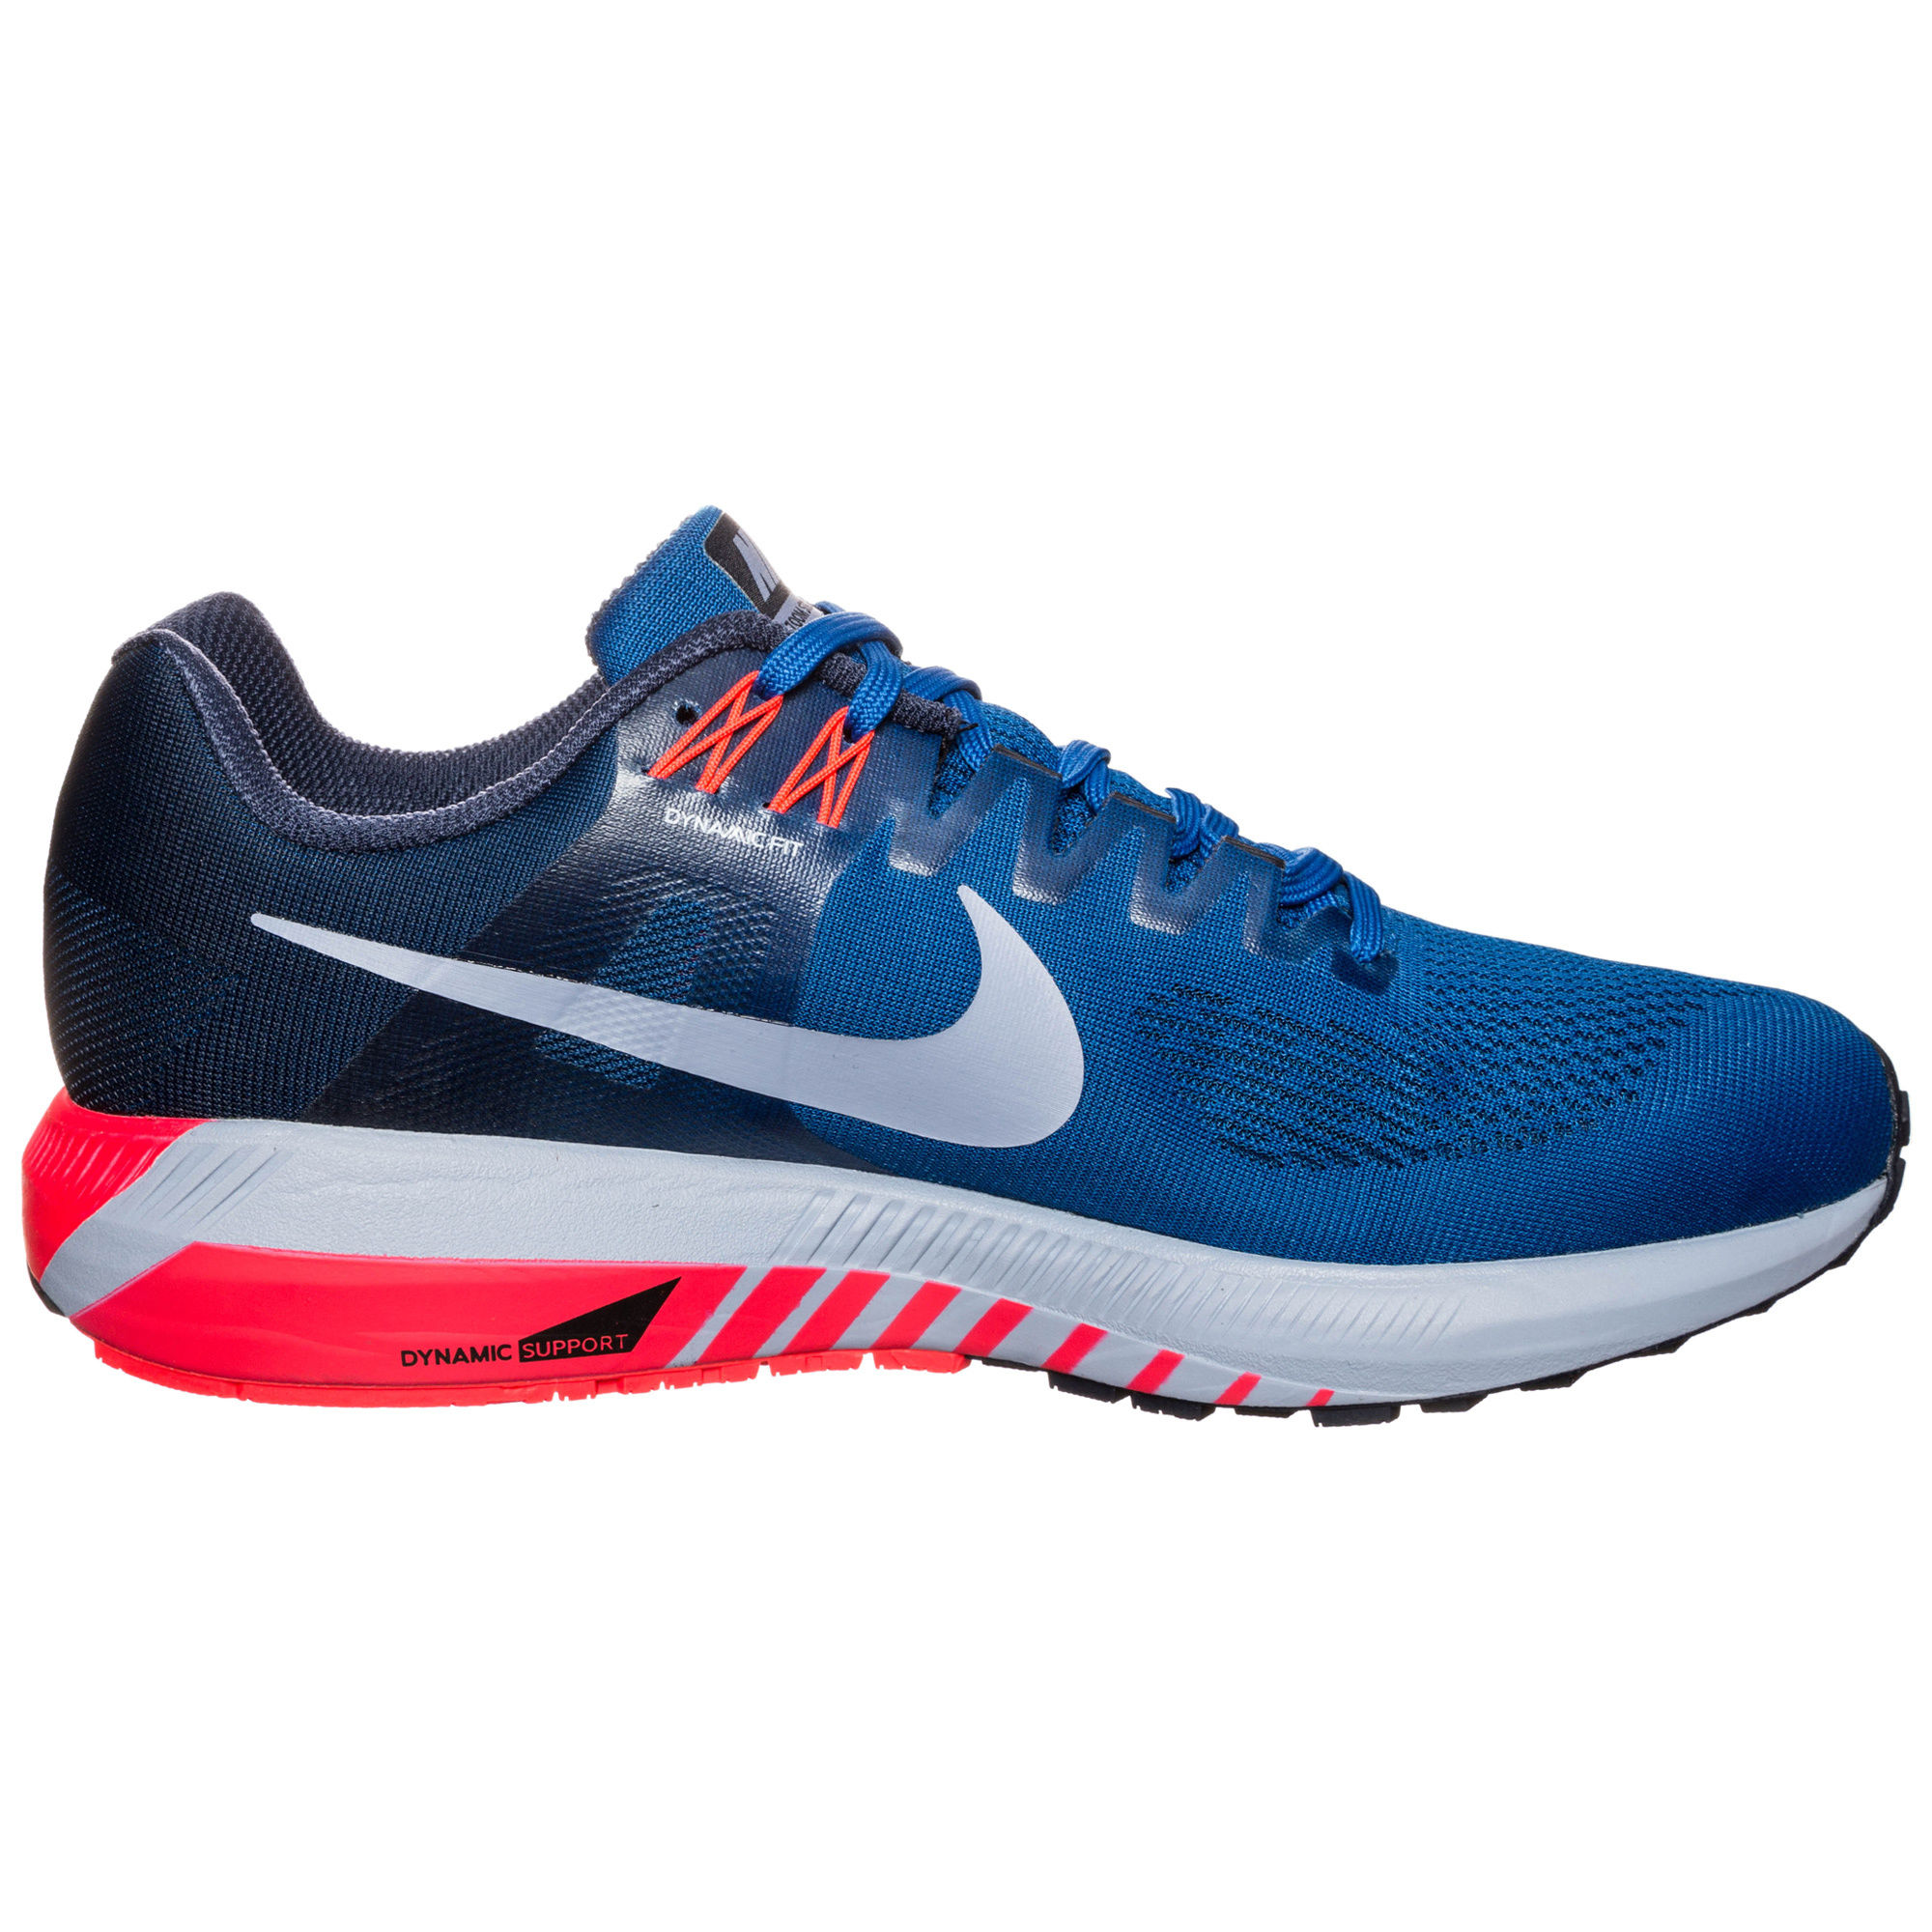 Nike Air Zoom Structure 21 in Blau